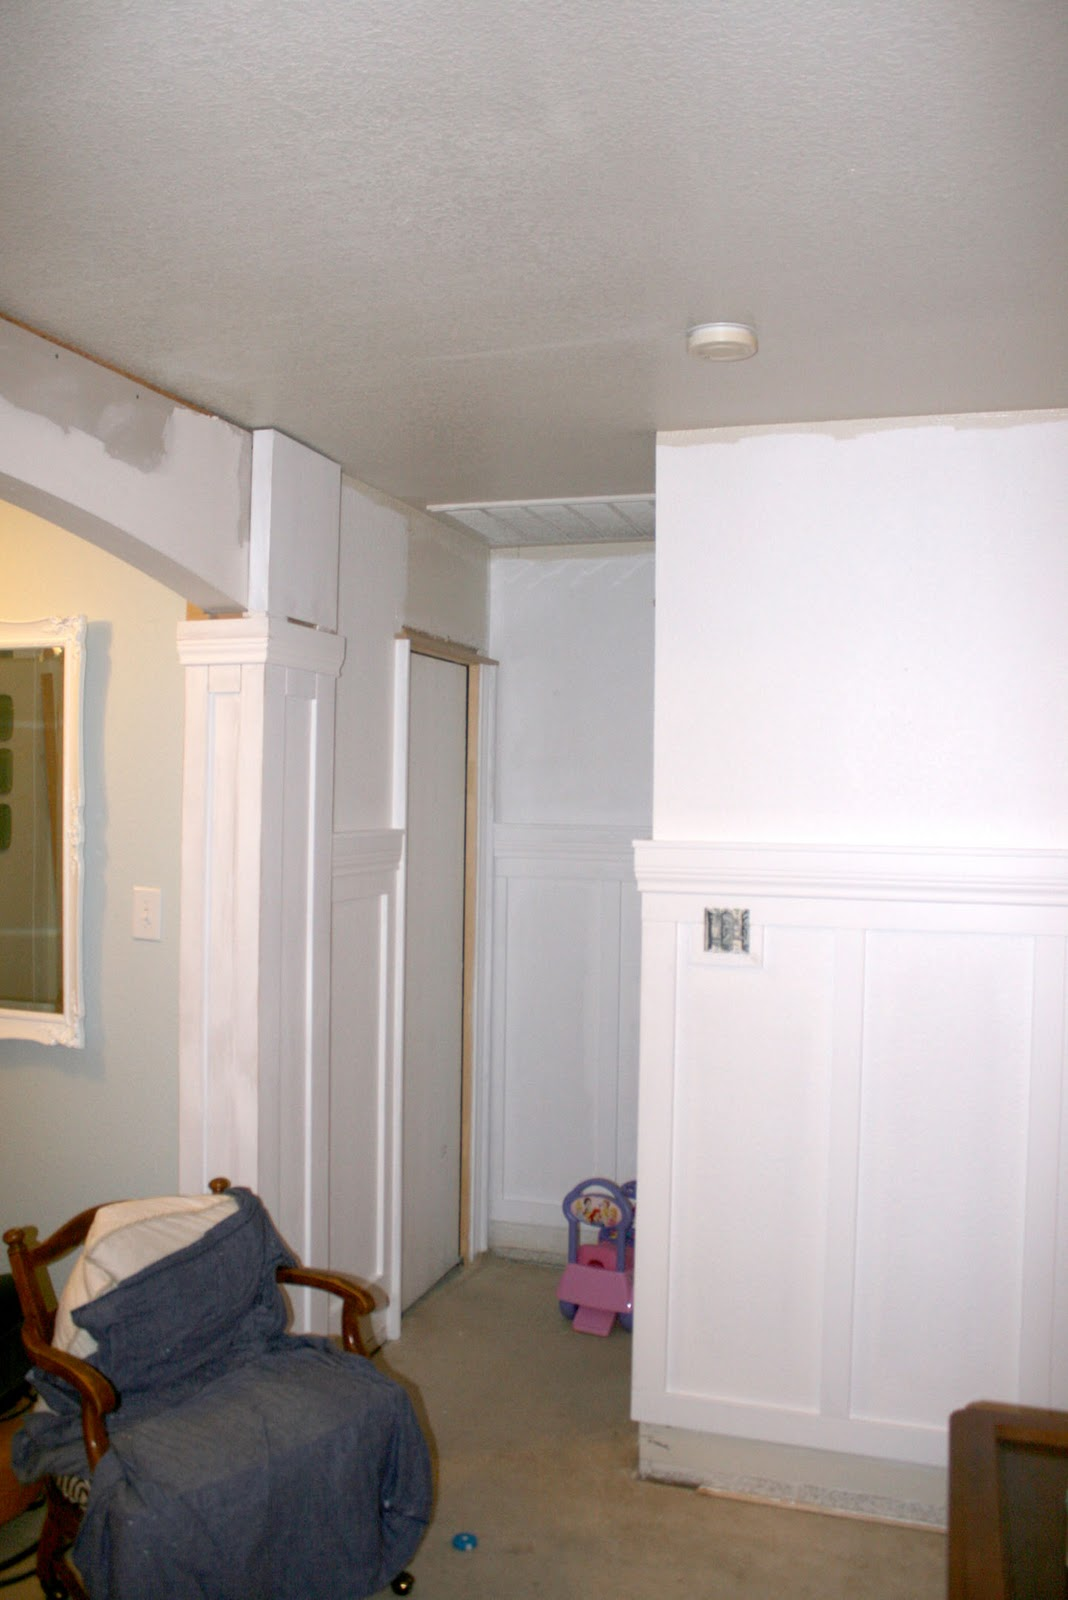 Remodelaholic | Living Room Update 4; Installing Wainscoting and ...